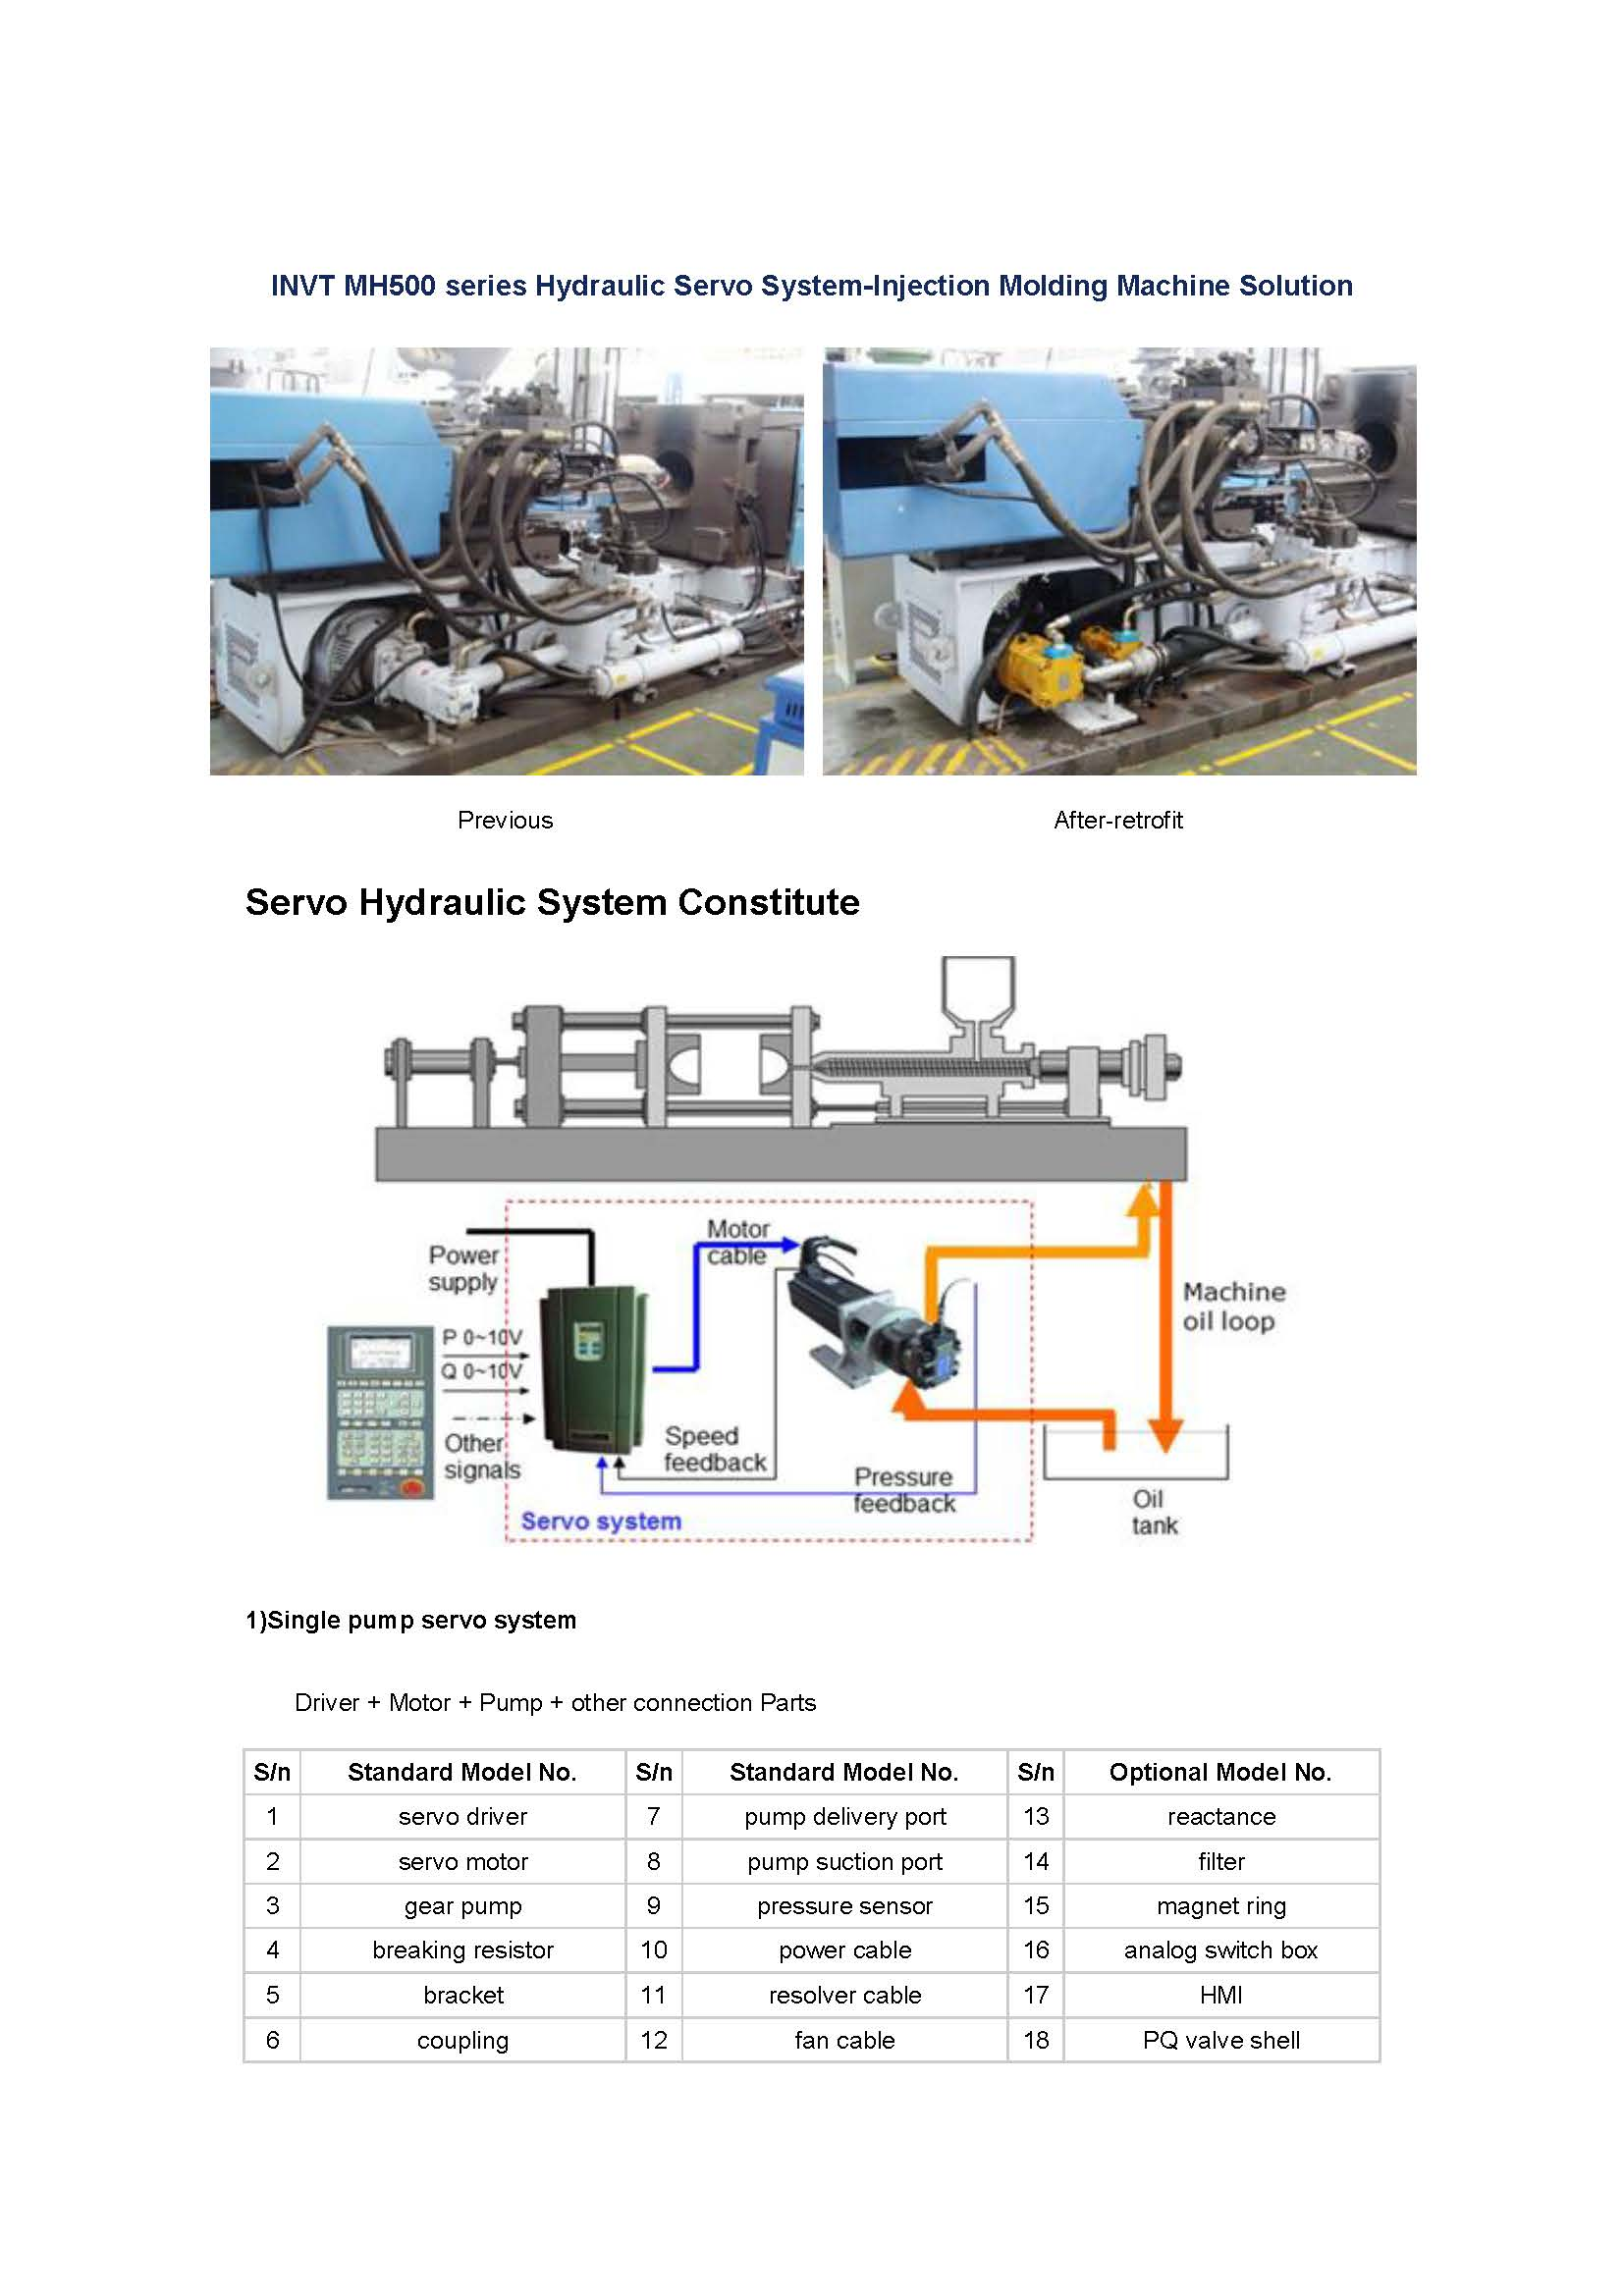 INVT MH500 series Hydraulic Servo System-Injection Molding Machine Solution